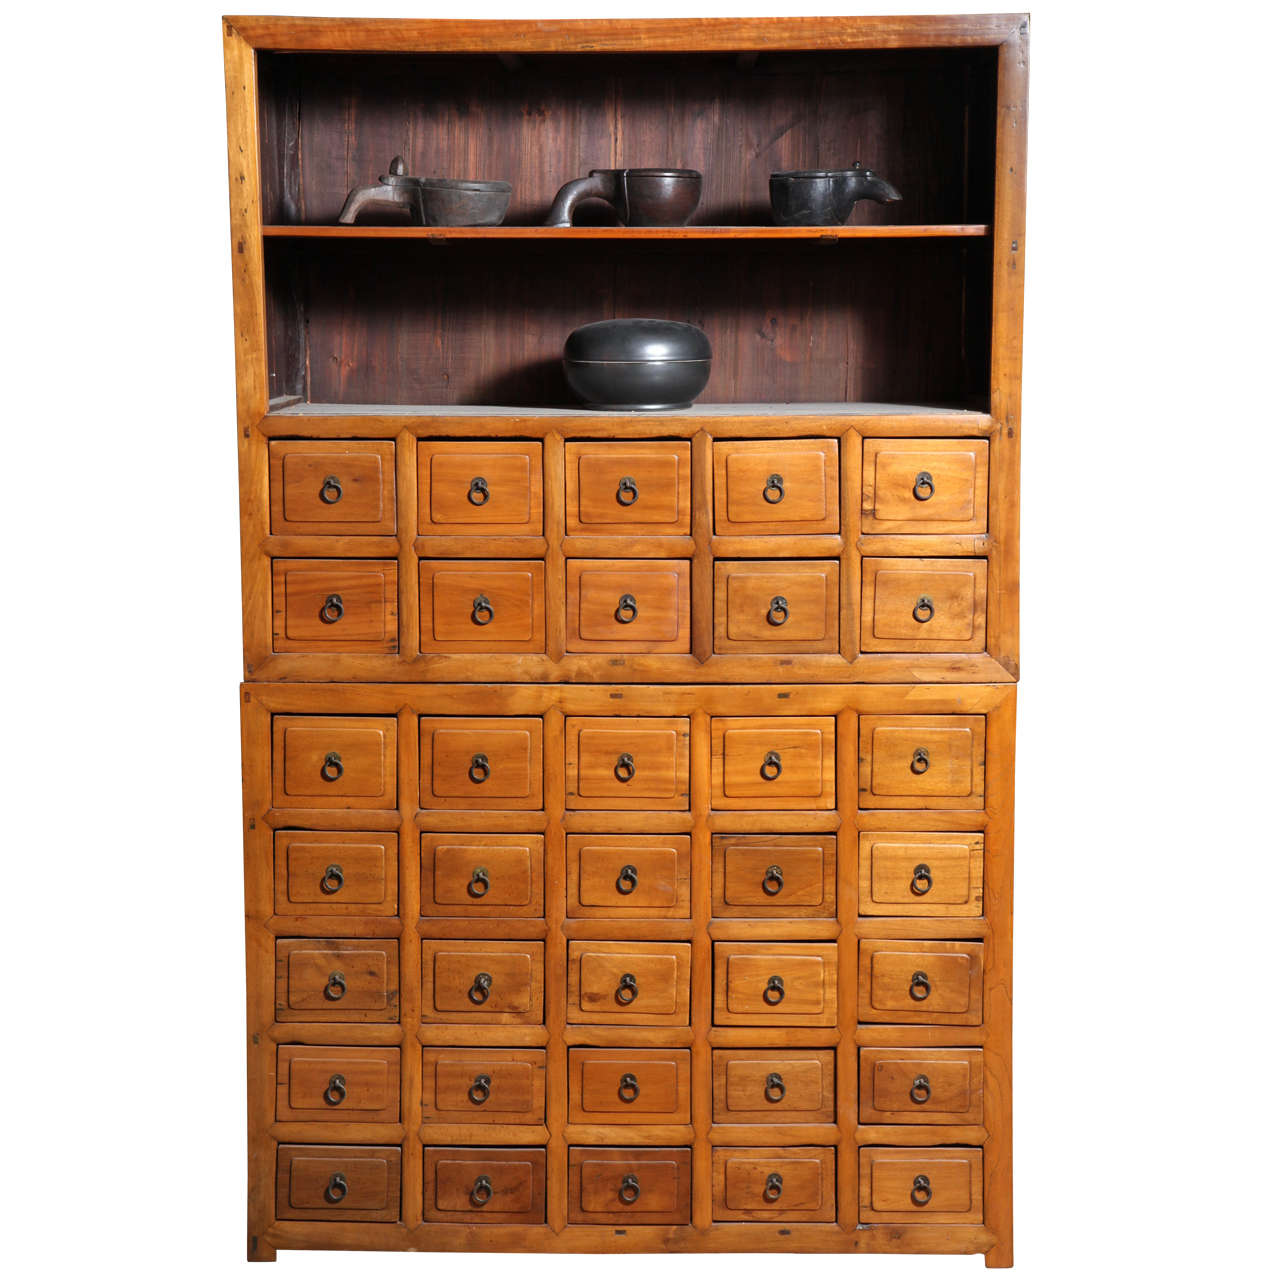 Incroyable 19th Century Chinese Elm Apothecary Cabinet Of Elmwood With Multiple Drawers